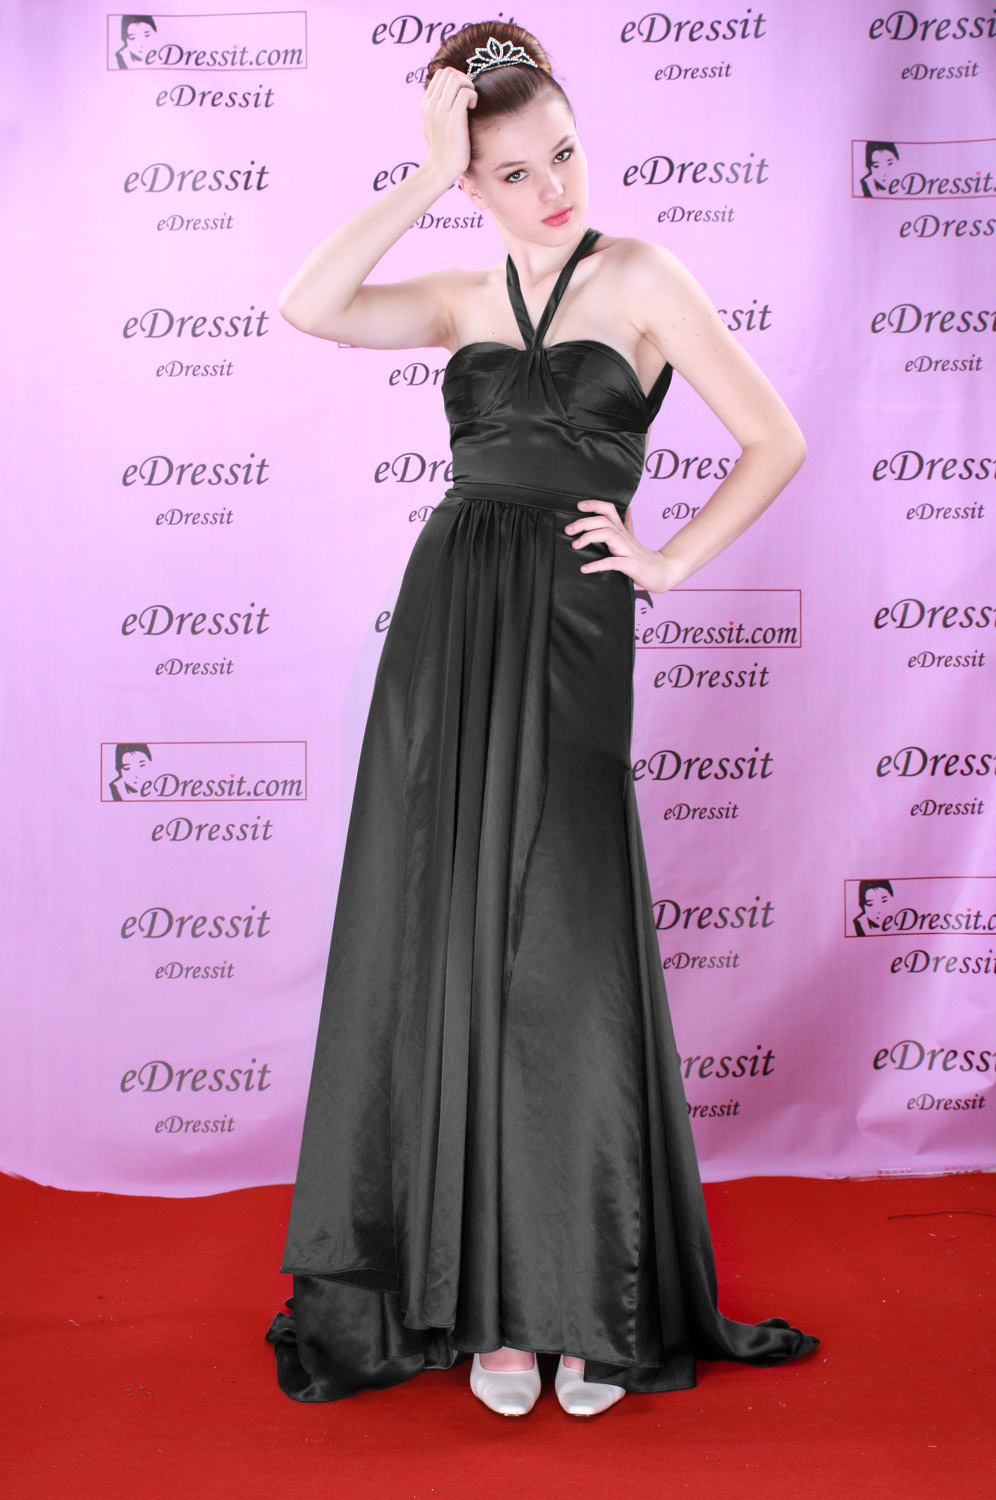 eDressit sexy evening dress (00880705s)